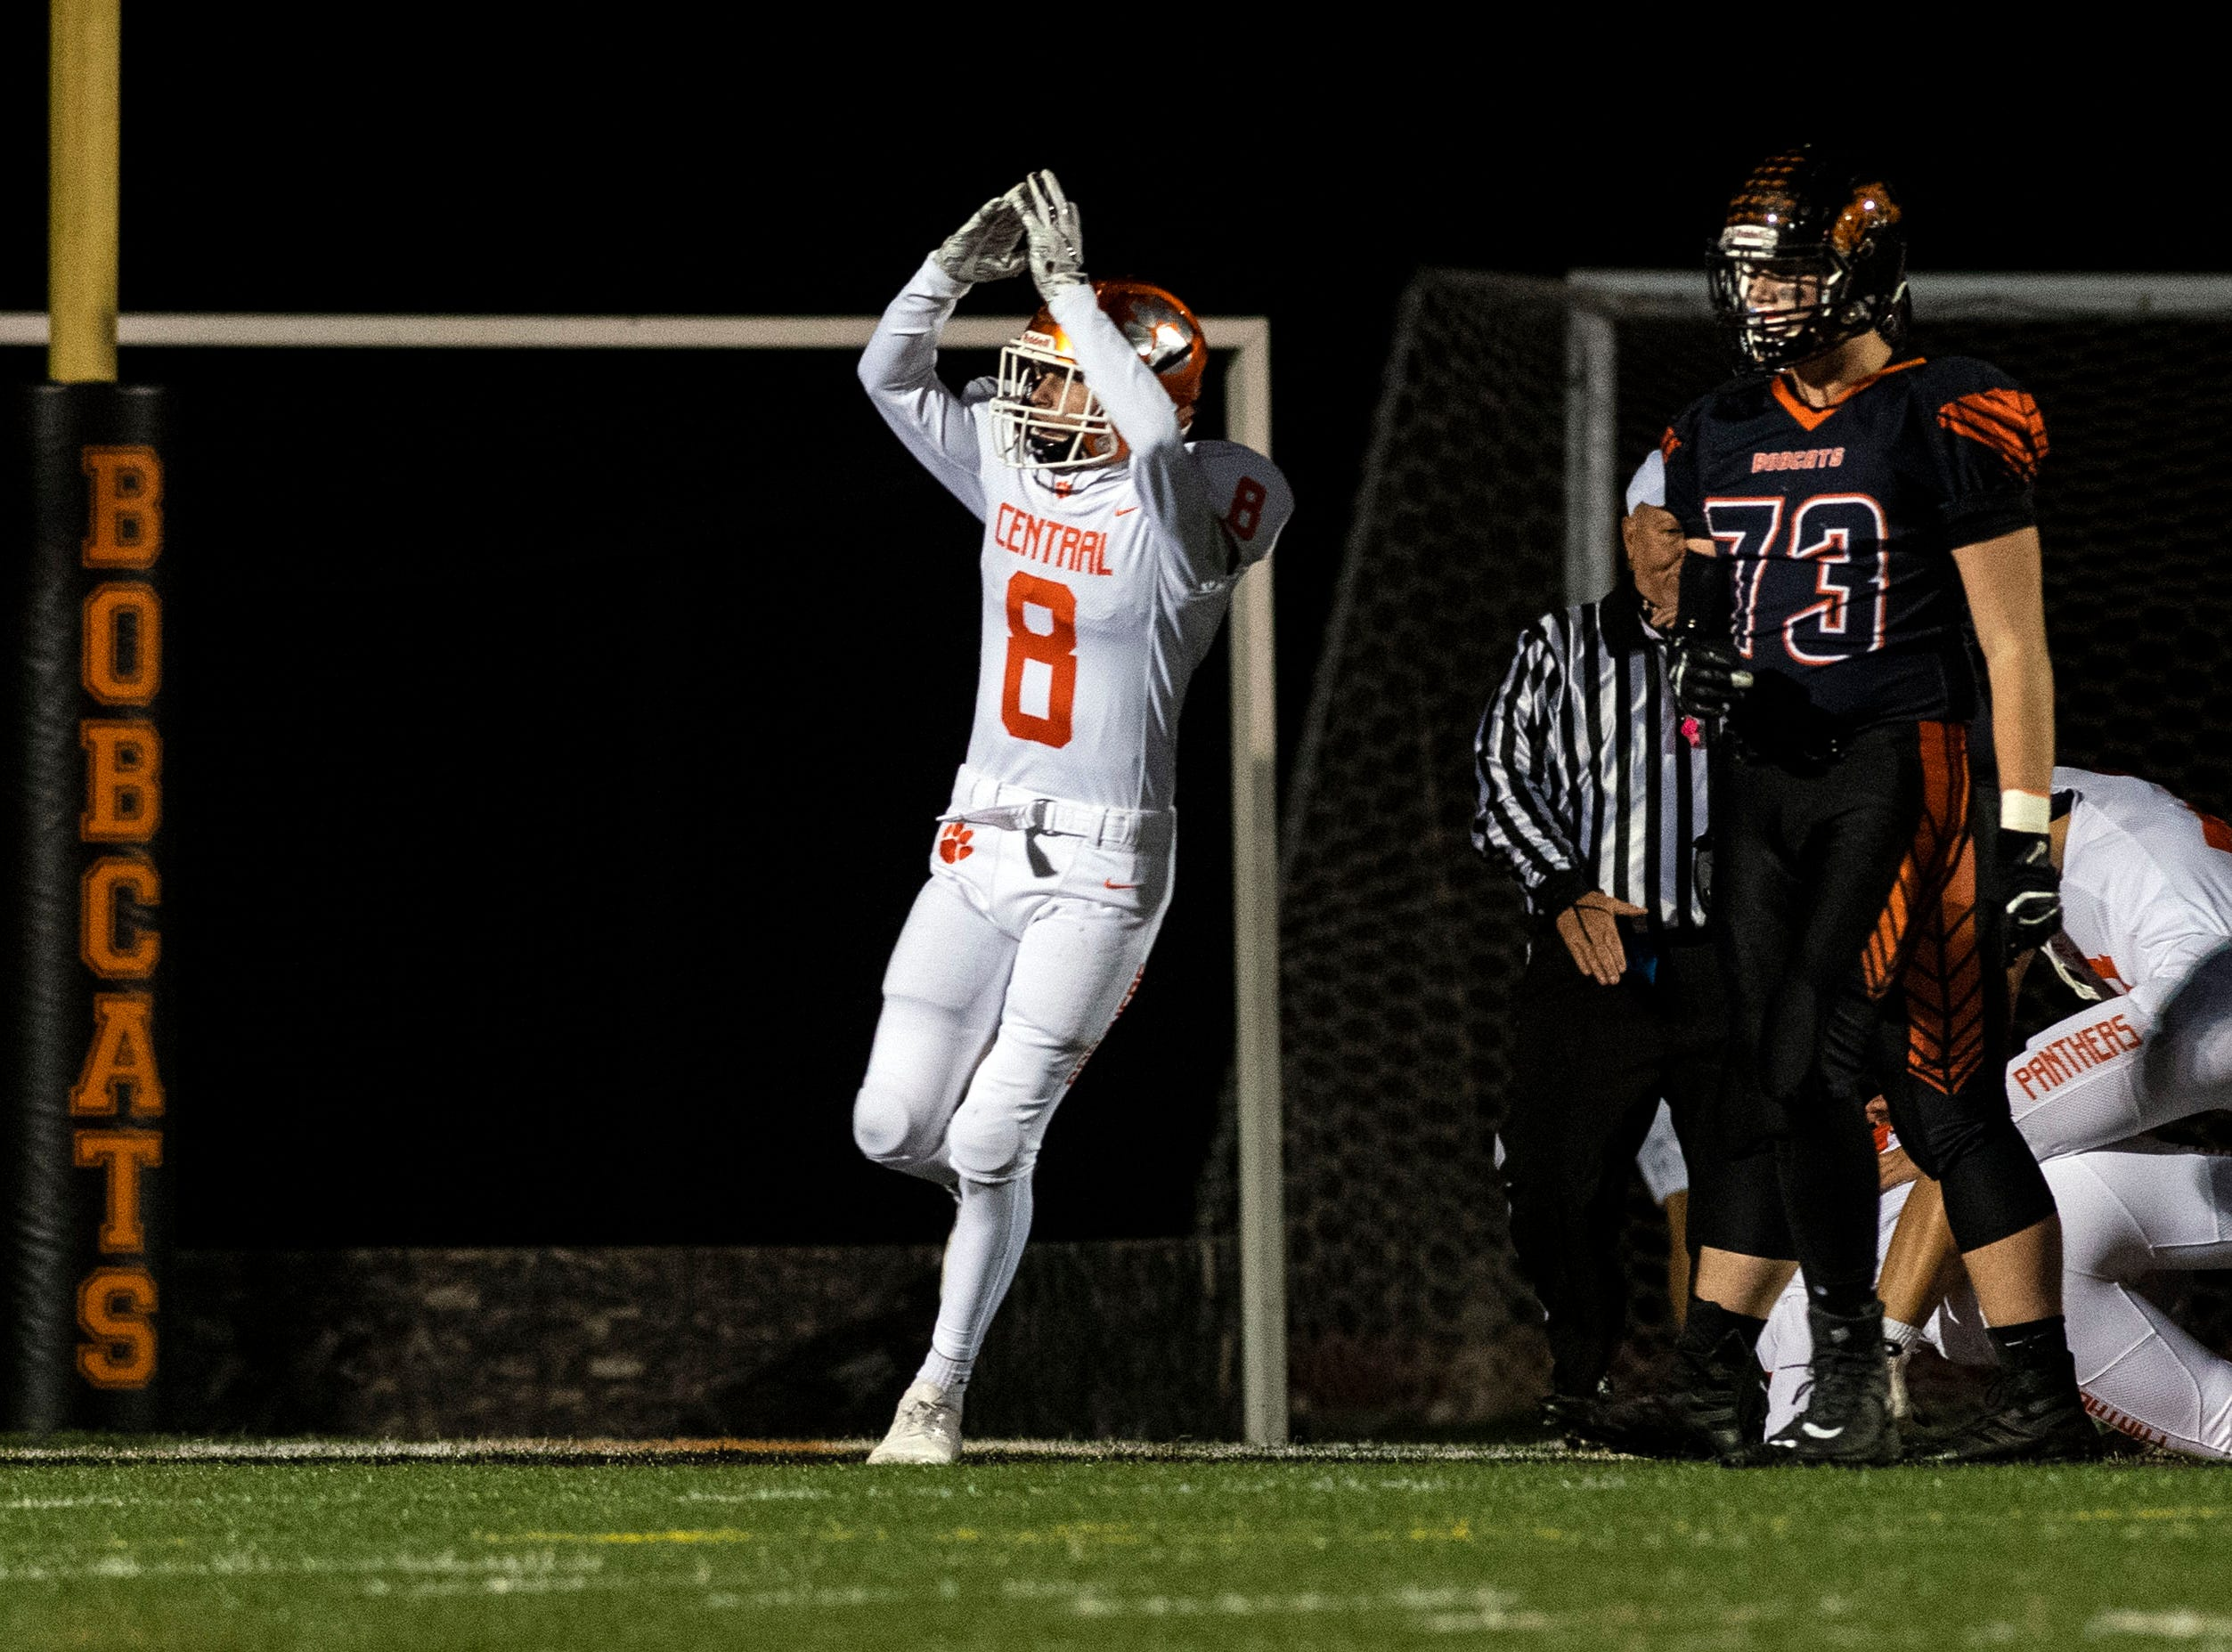 Central York's Mason Myers (8) celebrates the Panthers earning a safety in the first quarter during a YAIAA Division I football game at Northeastern High School on Friday, Oct. 12, 2018. The Central York Panthers beat the Northeastern Bobcats, 44-7.